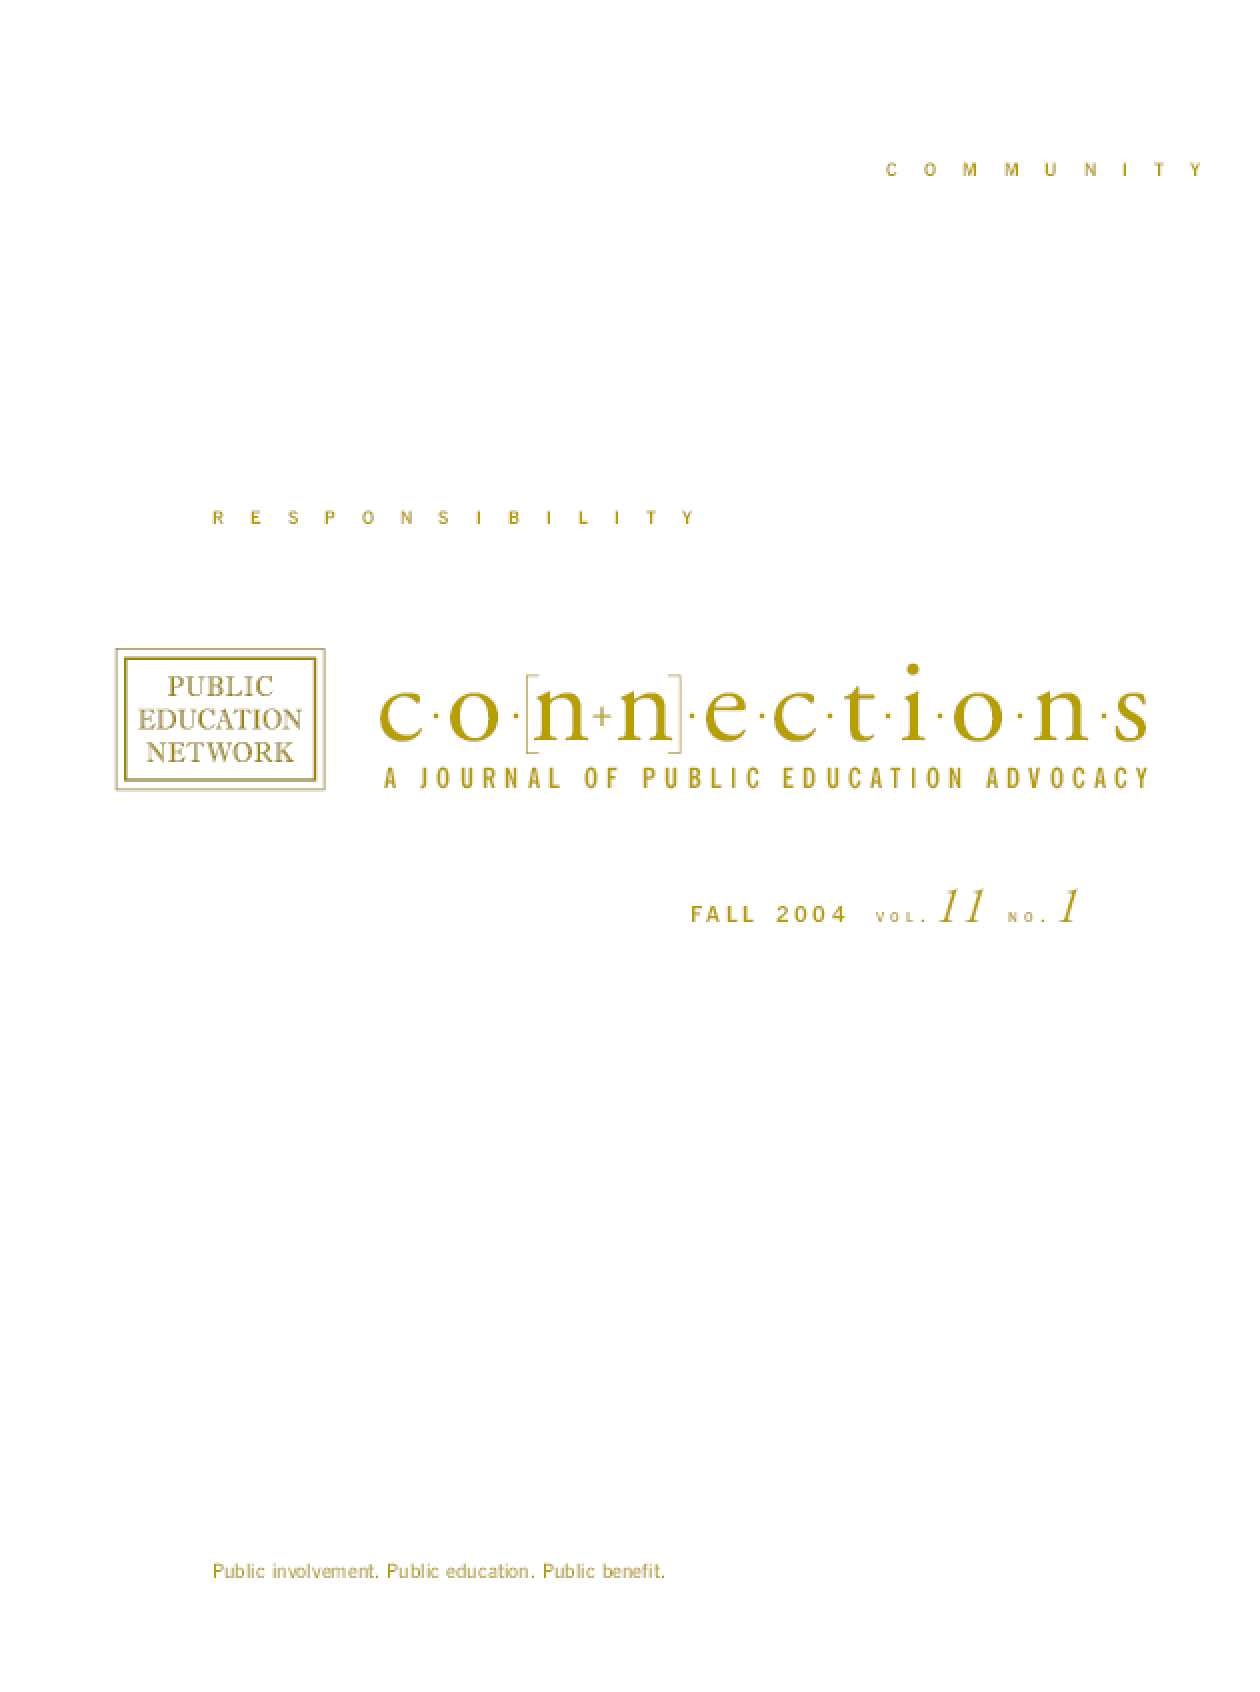 Connections: A Journal of Public Education Advocacy - Fall 2004, Vol. 11, No. 1